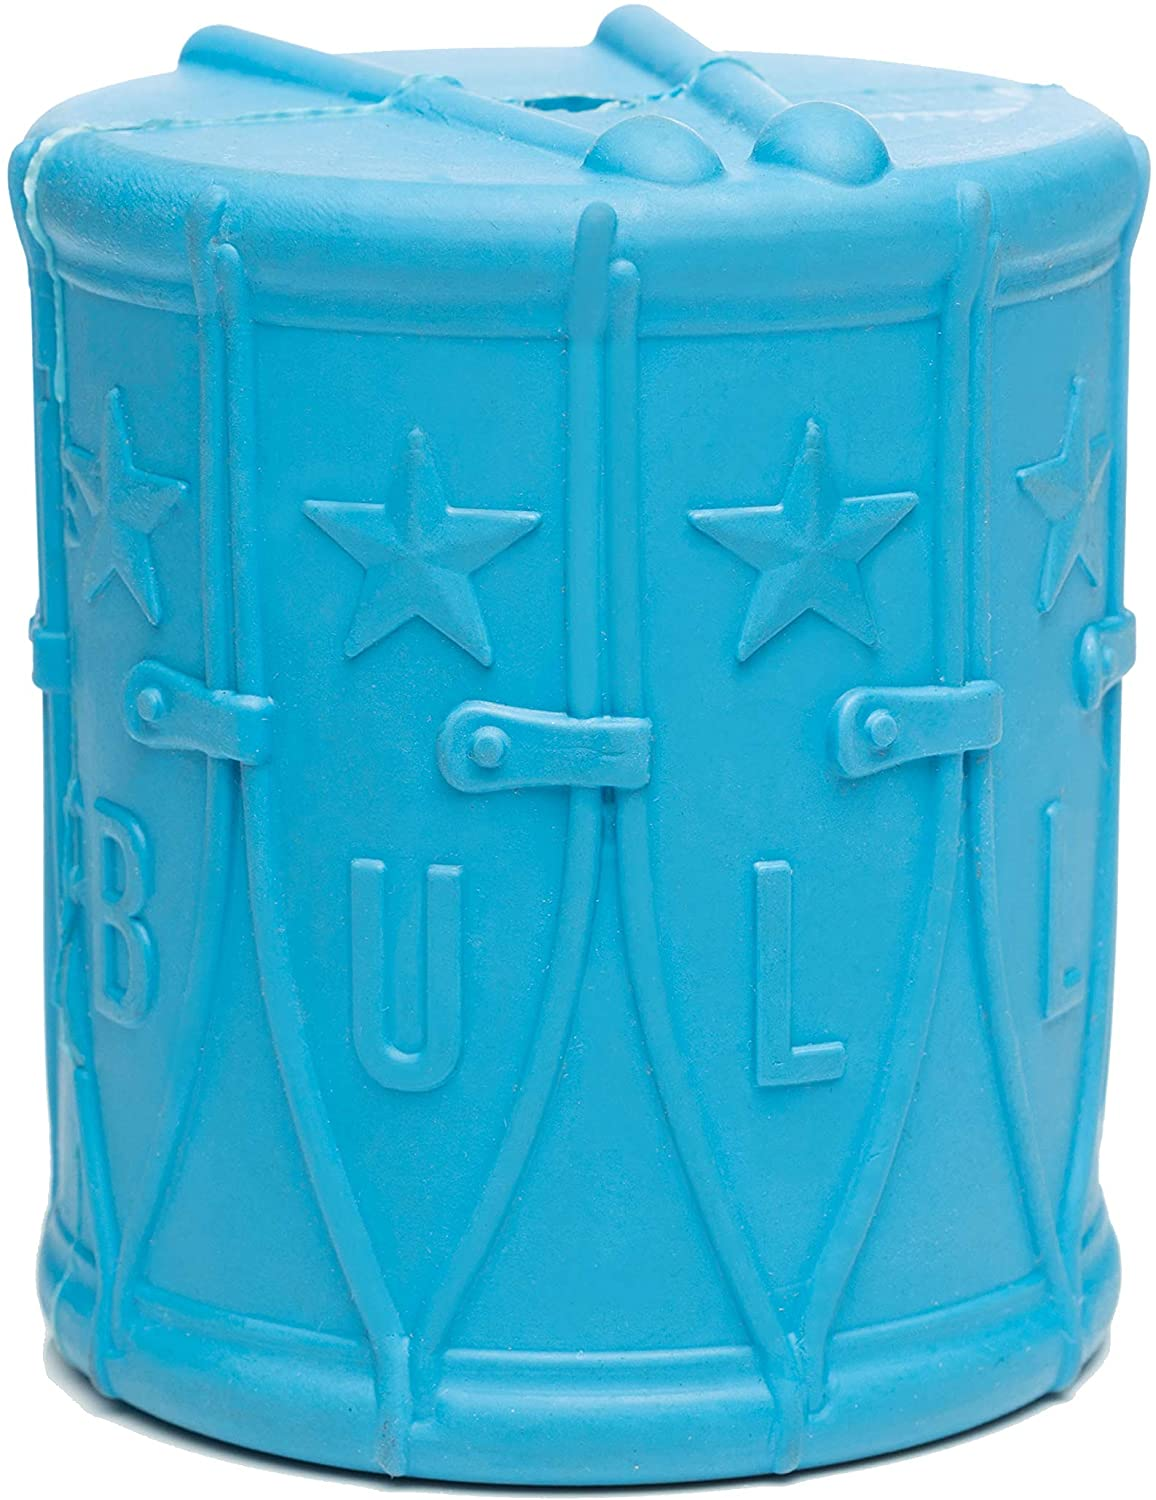 BULLYMAKE - 1776 Drum - Rubber Chew Toy - Made in USA